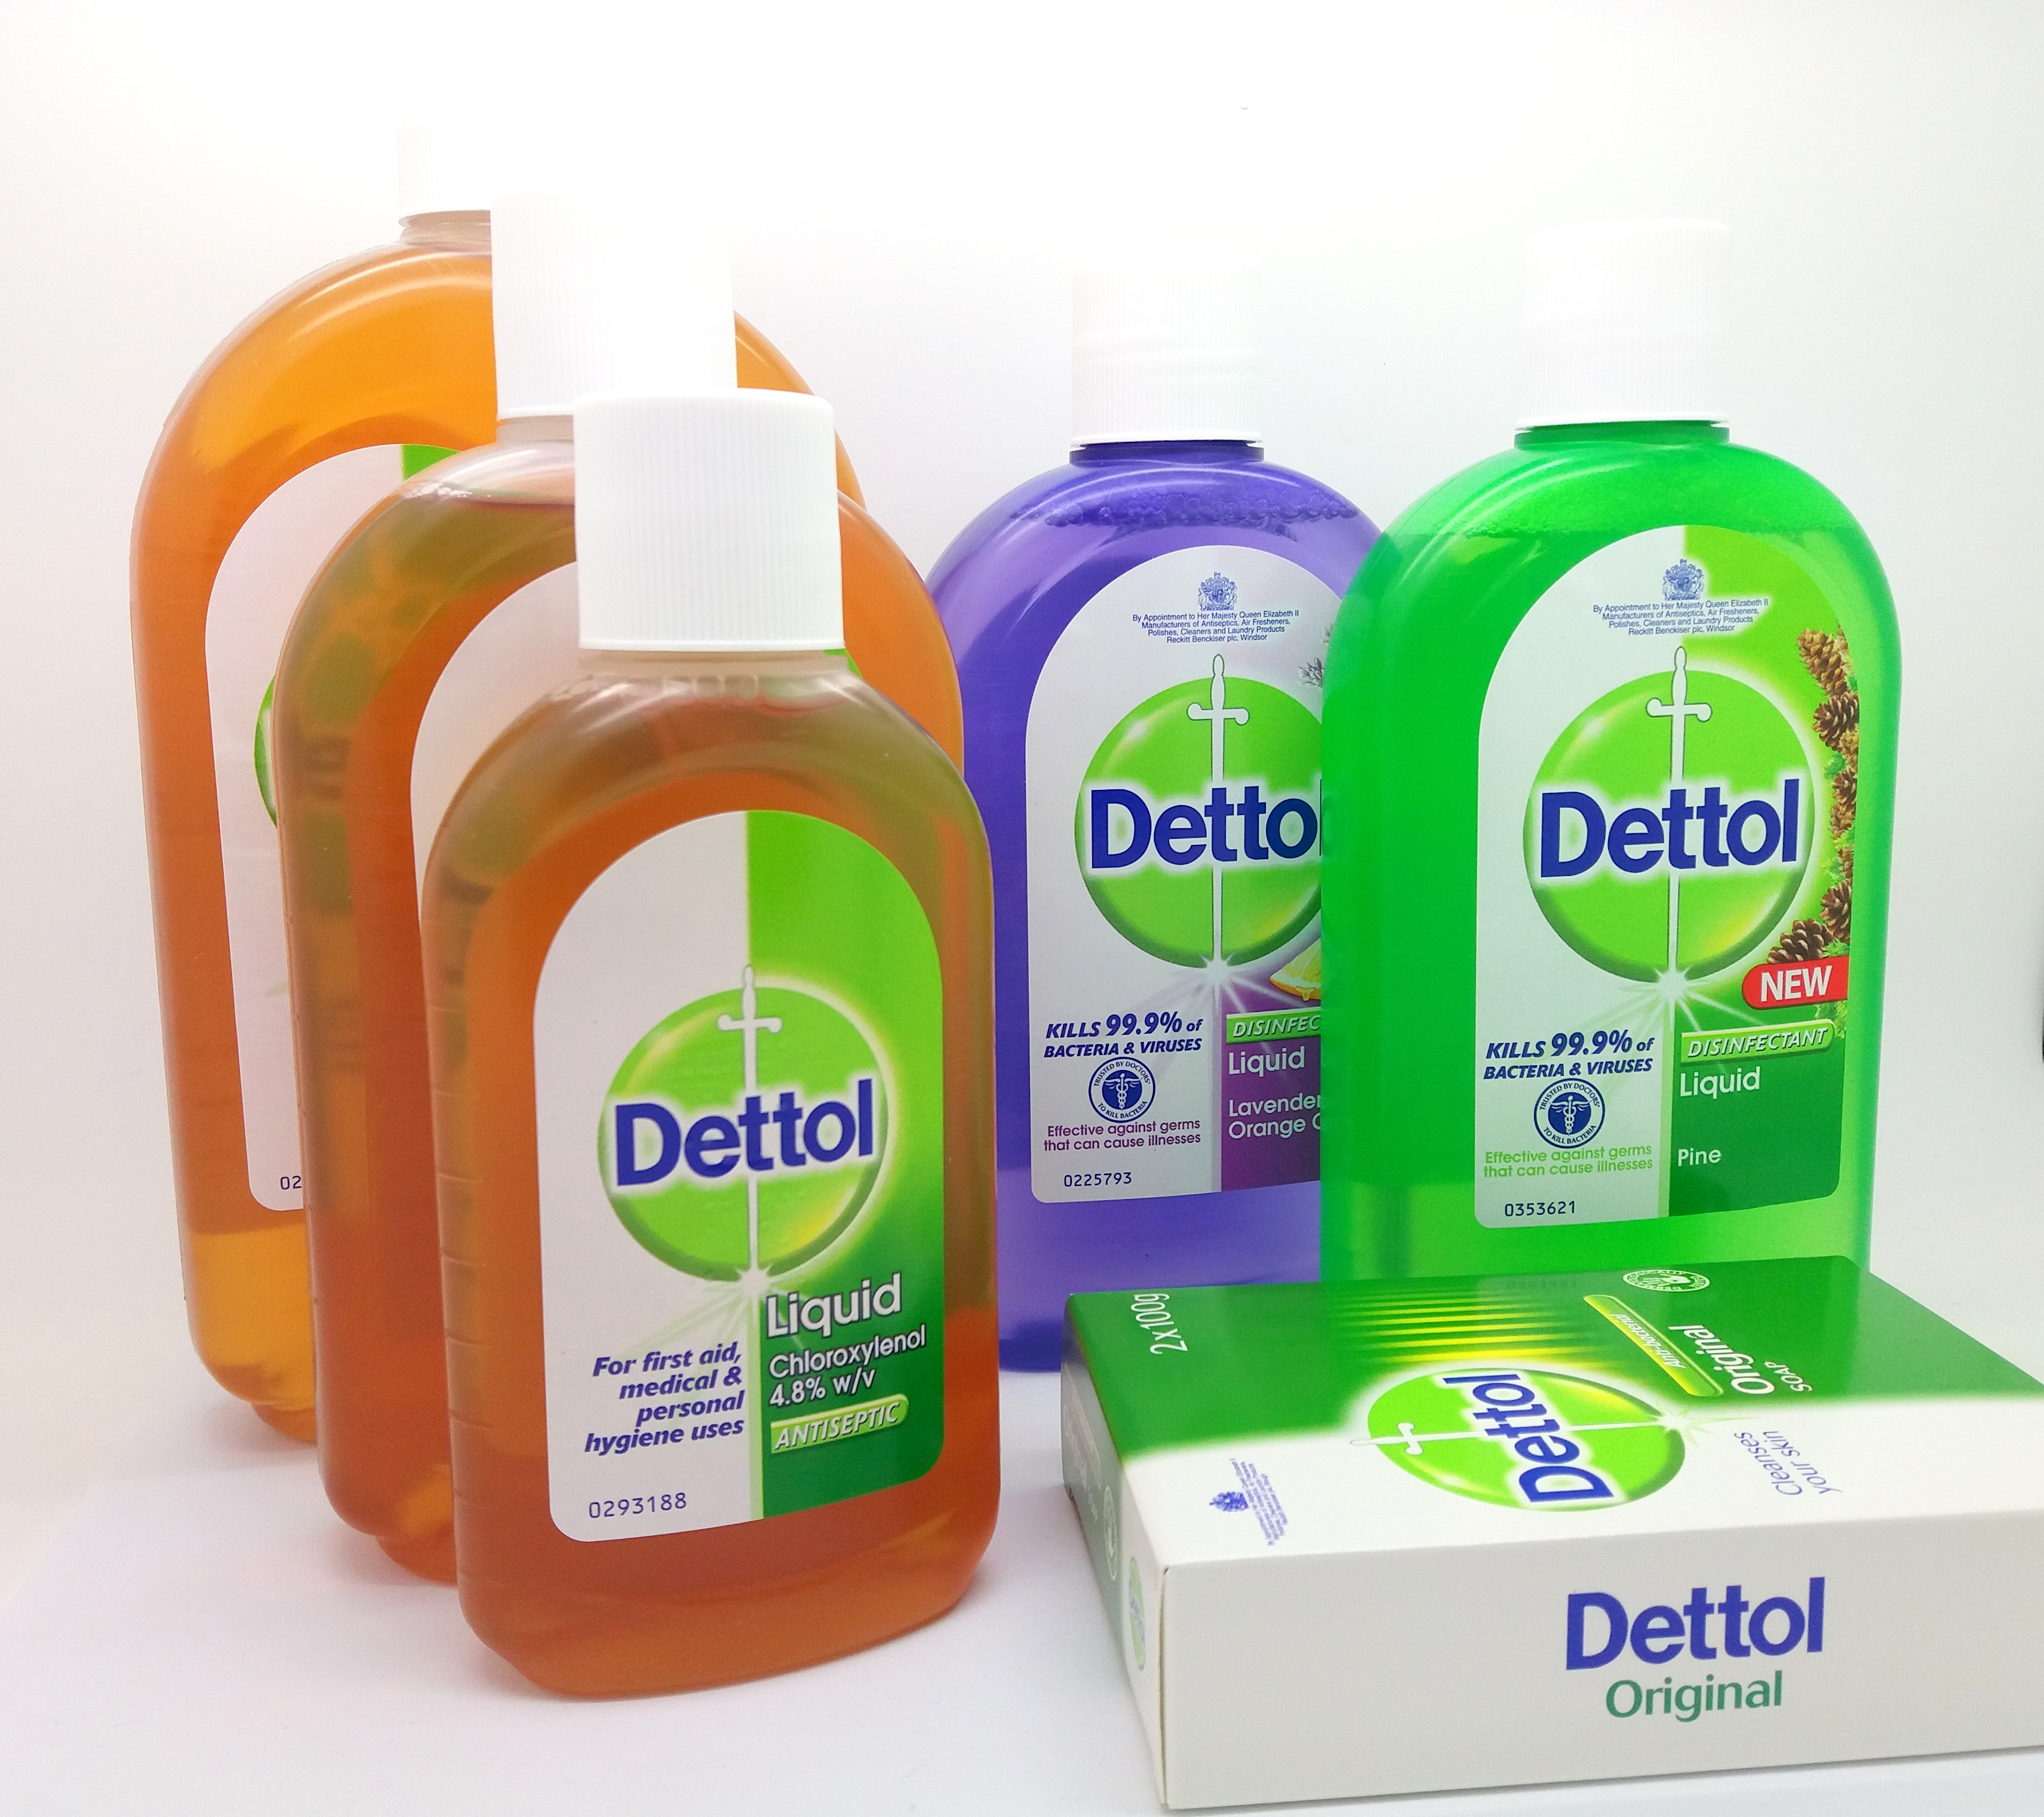 Dettol Antiseptic Disinfectant Anti Bacterial Liquid Soap Full Original Series Package Item Specifics